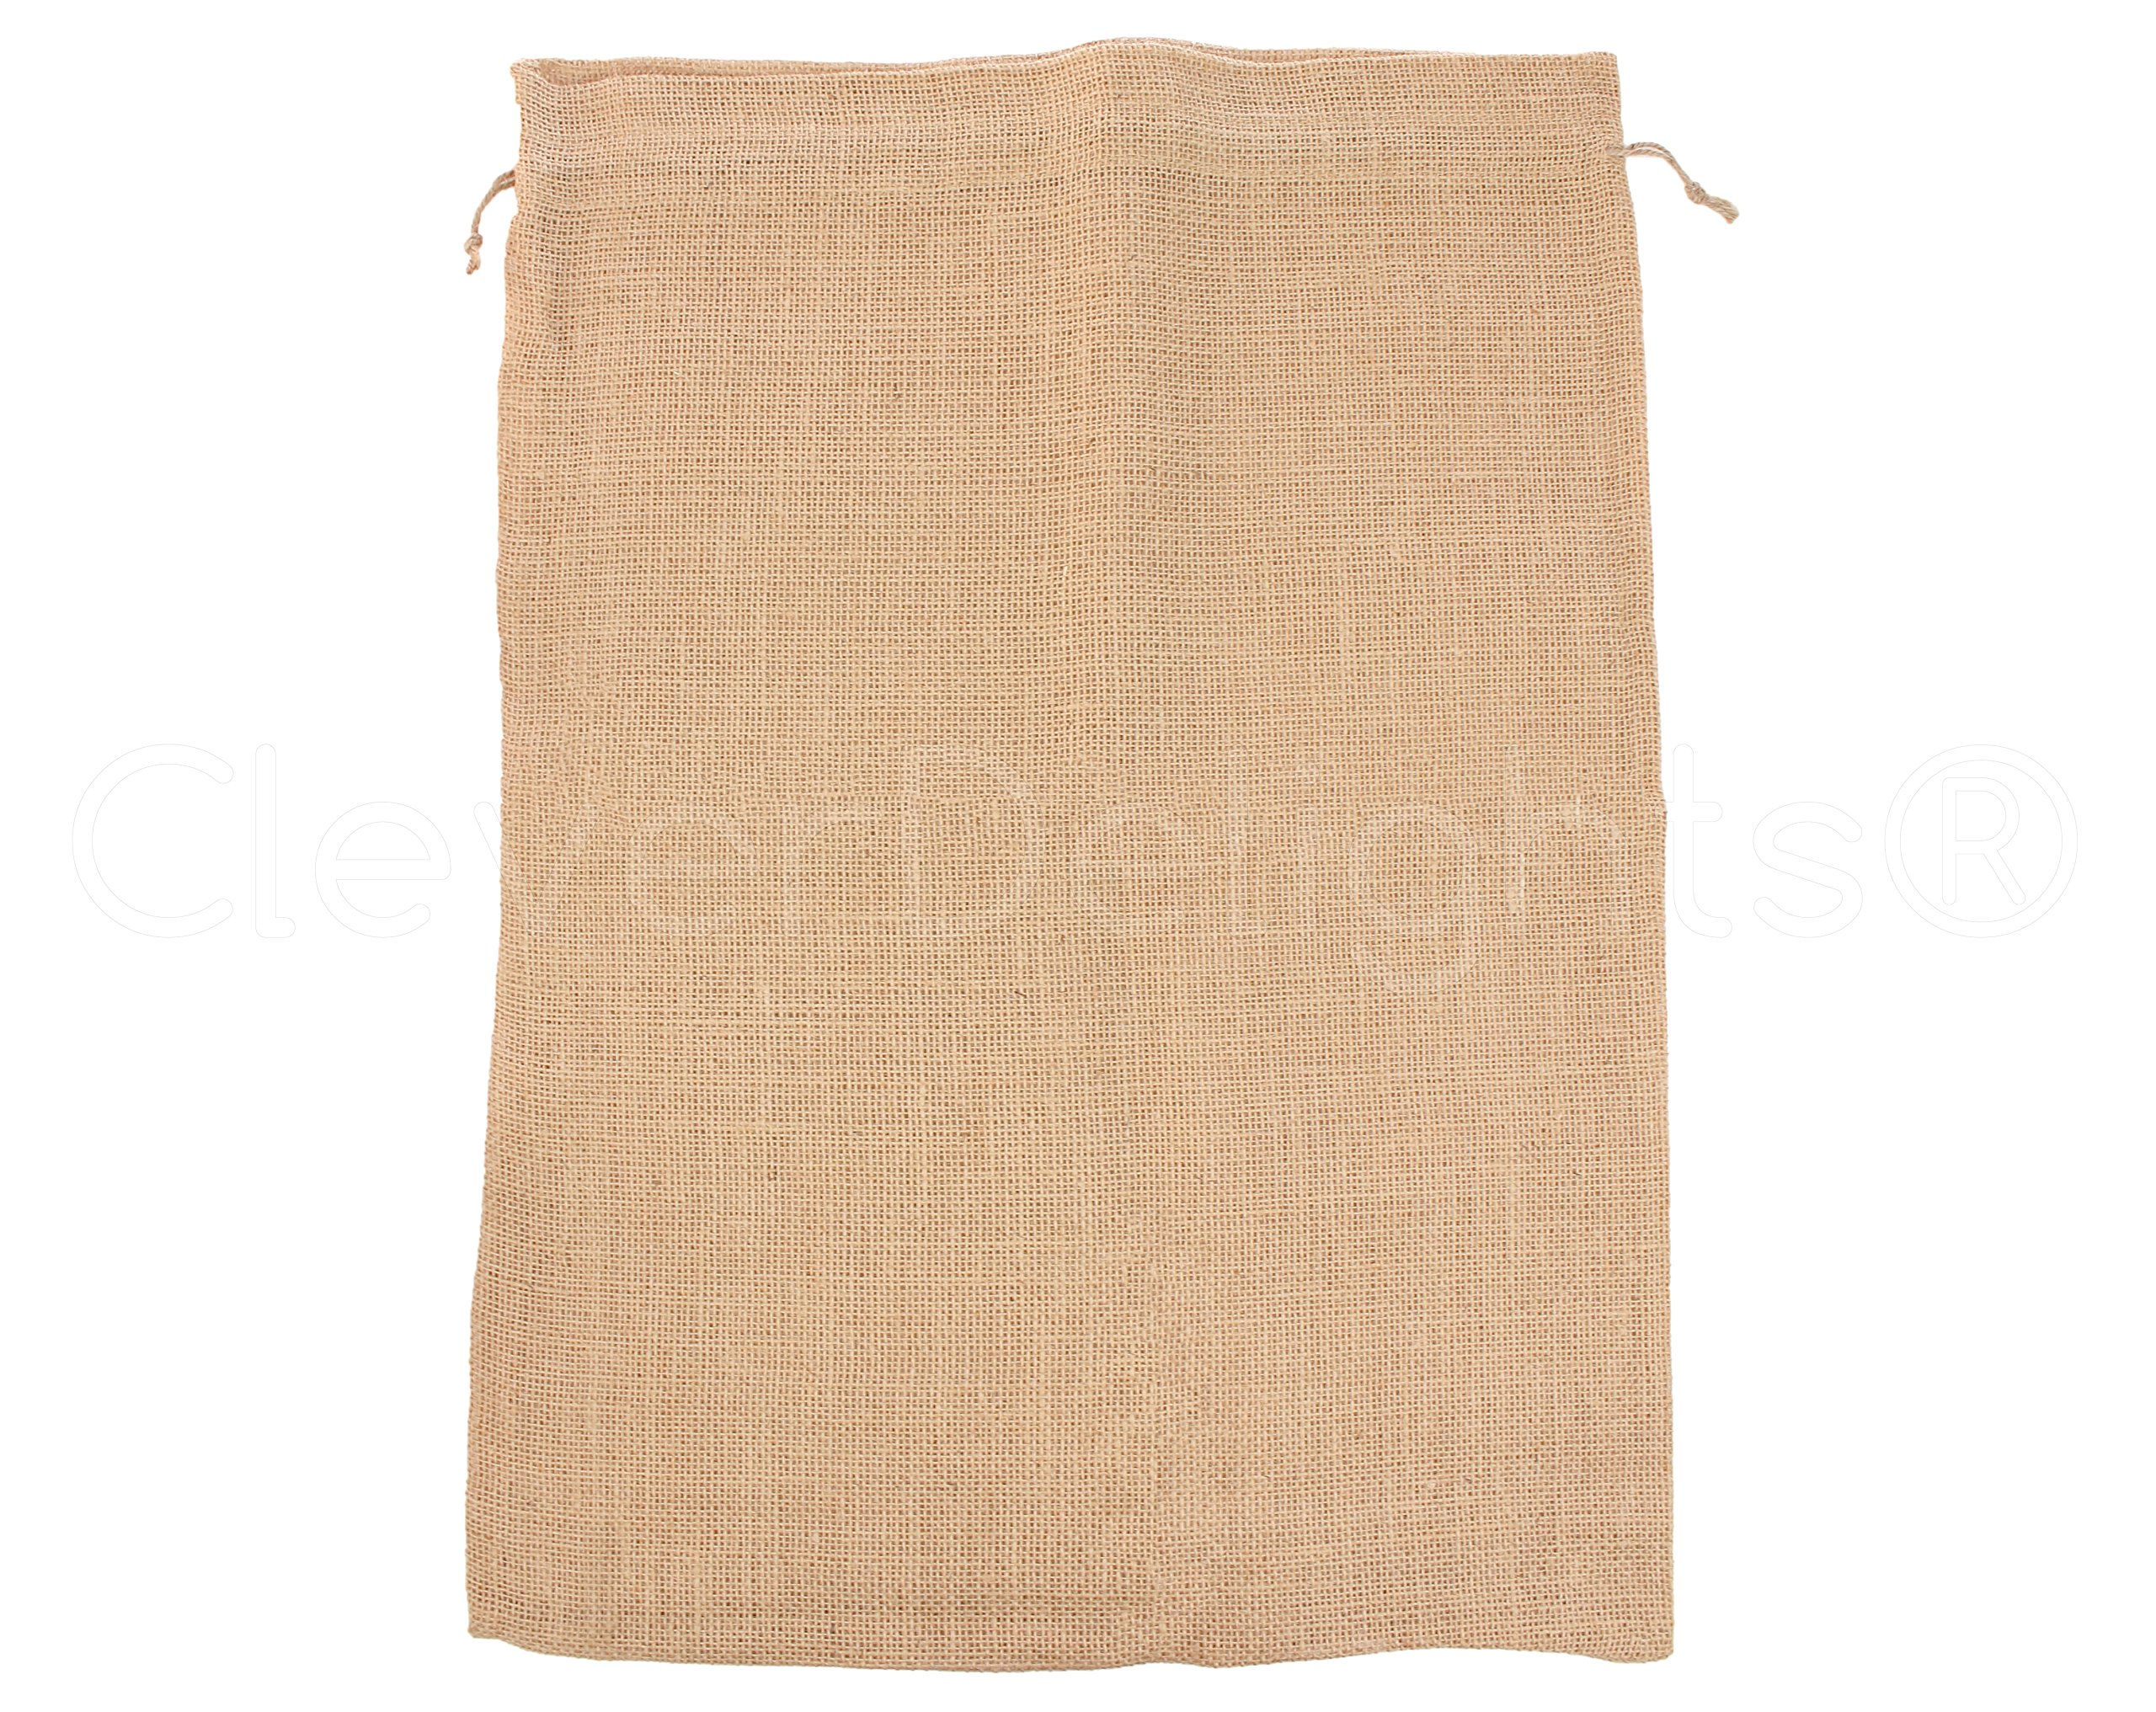 CleverDelights 18'' x 24'' Burlap Bags with Natural Jute Drawstring - 20 Pack - Large Burlap Pouch Gunny Sack Bag - 18x24 inch by CleverDelights (Image #1)